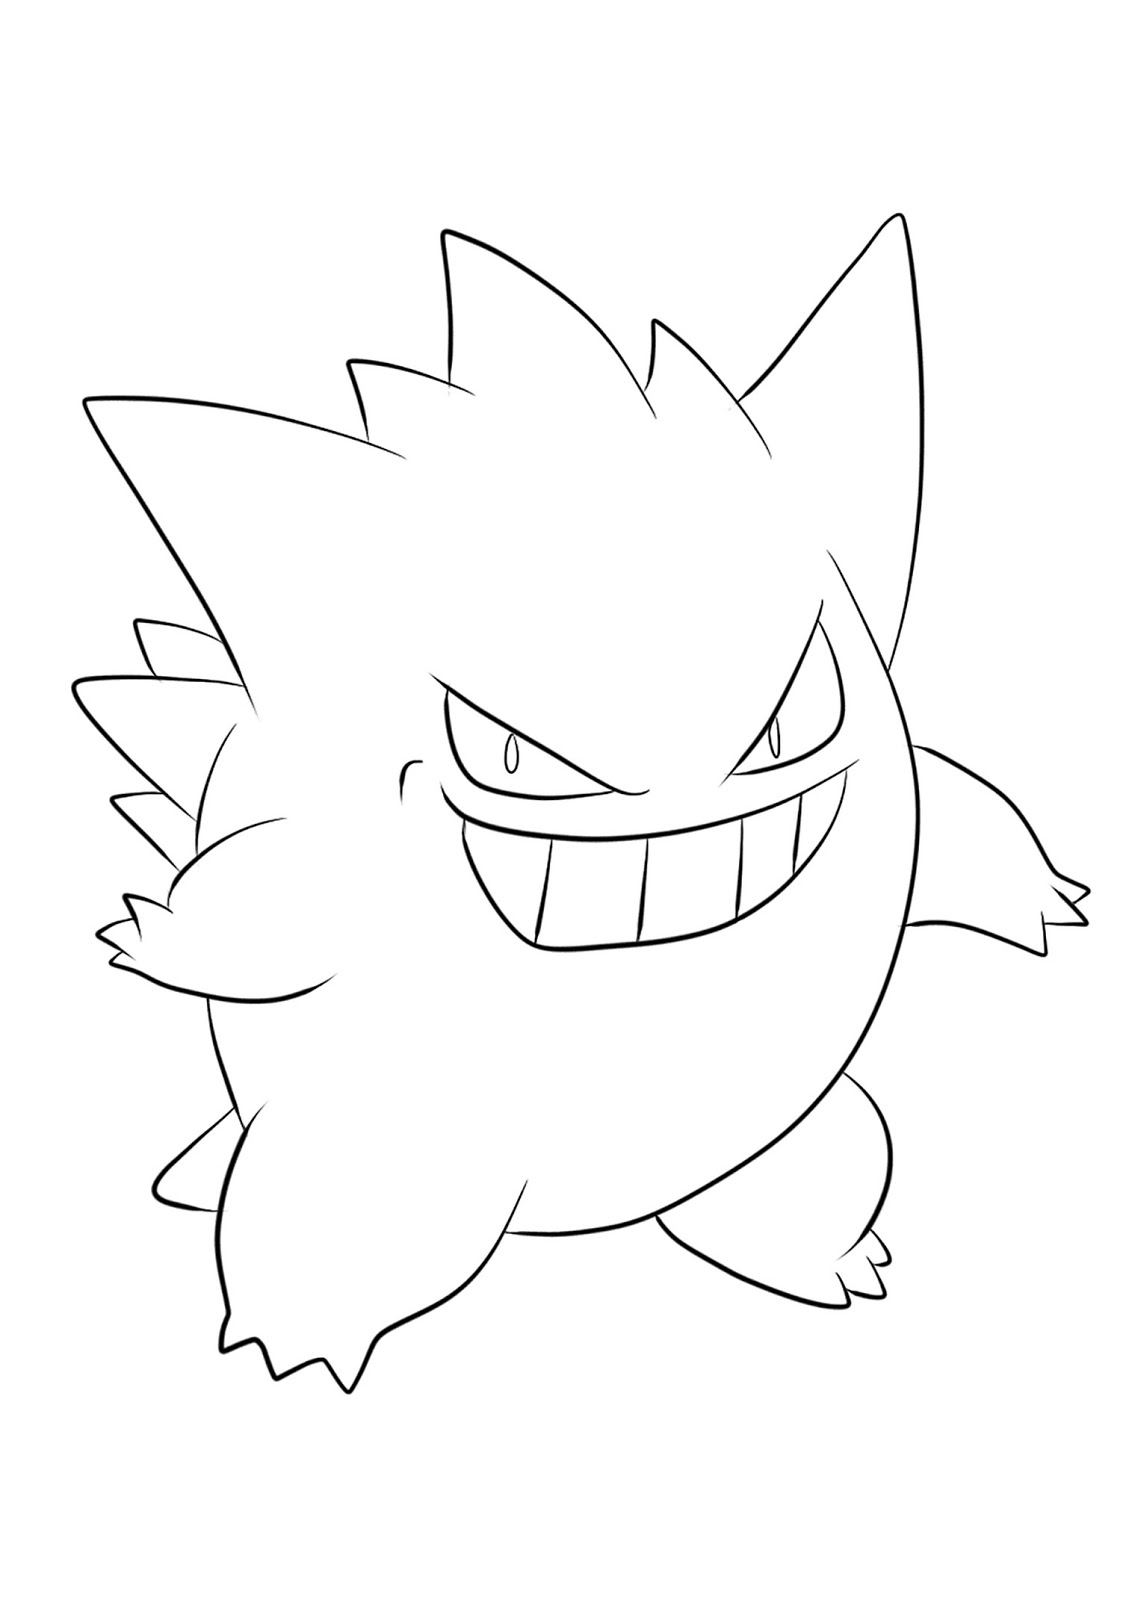 Pokemon Gengar Coloring Pages - Free Pokemon Coloring Pages